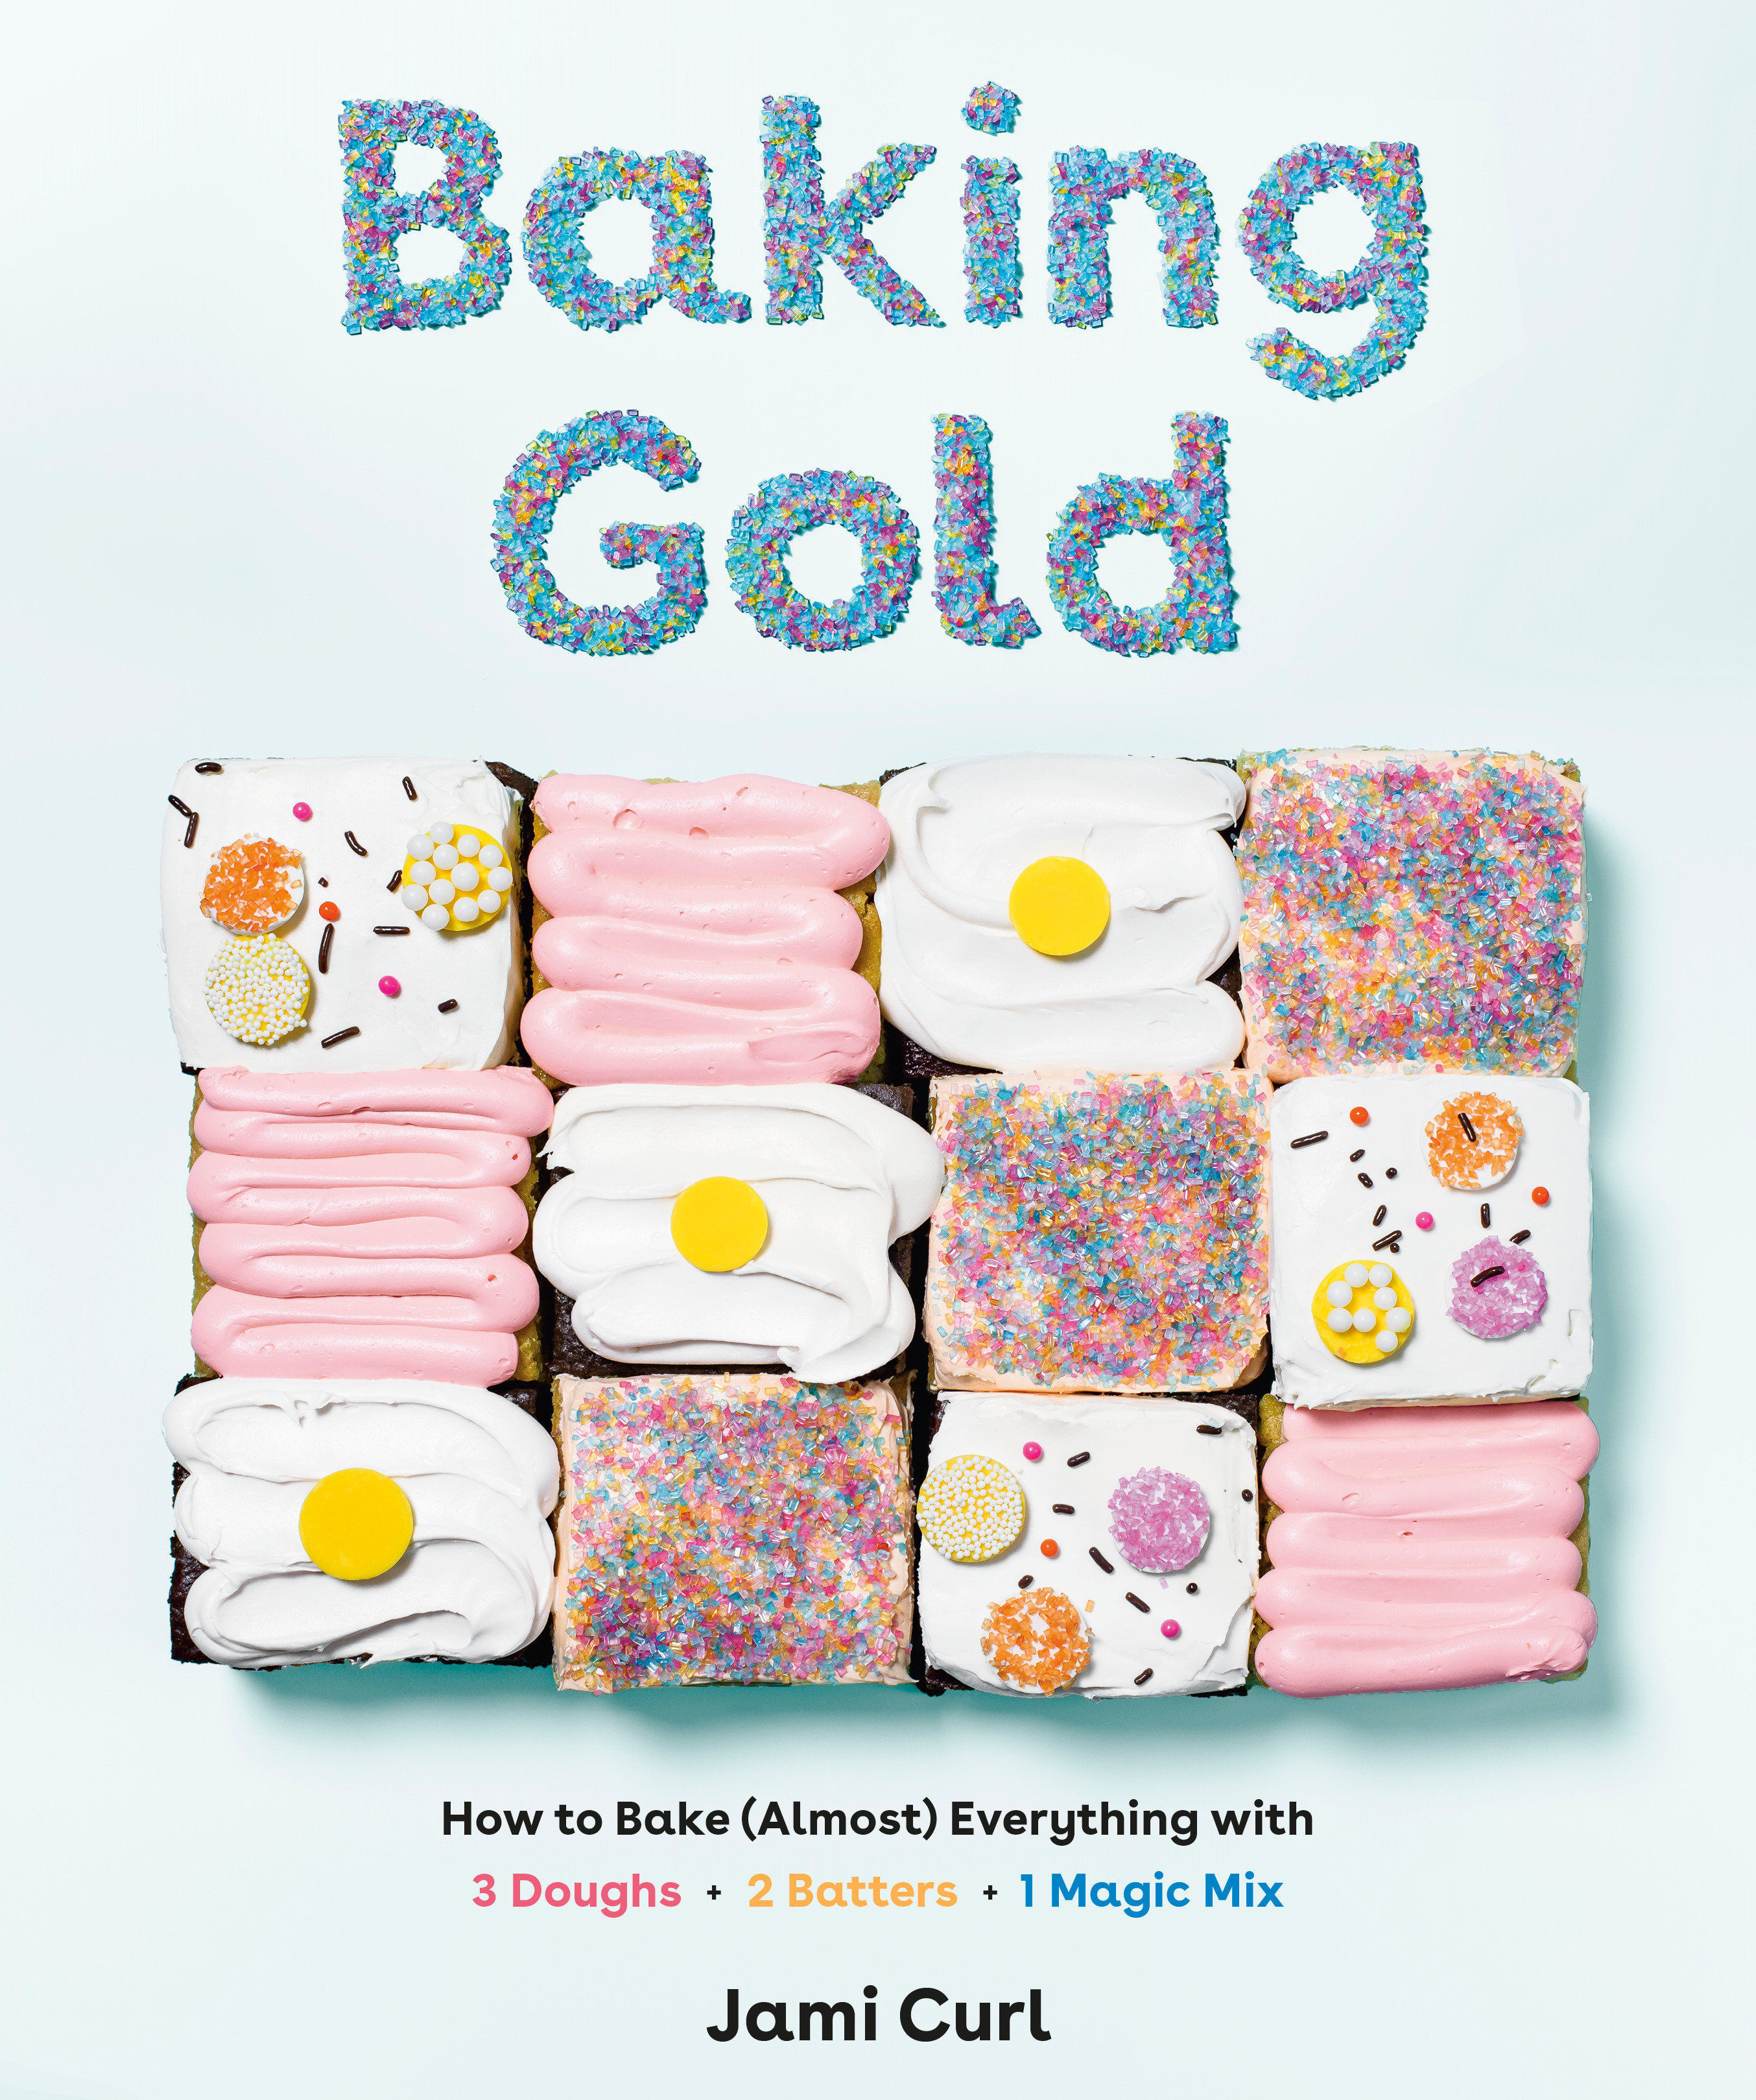 Baking Gold How to Bake (Almost) Everything with 3 Doughs, 2 Batters, and 1 Magic Mix